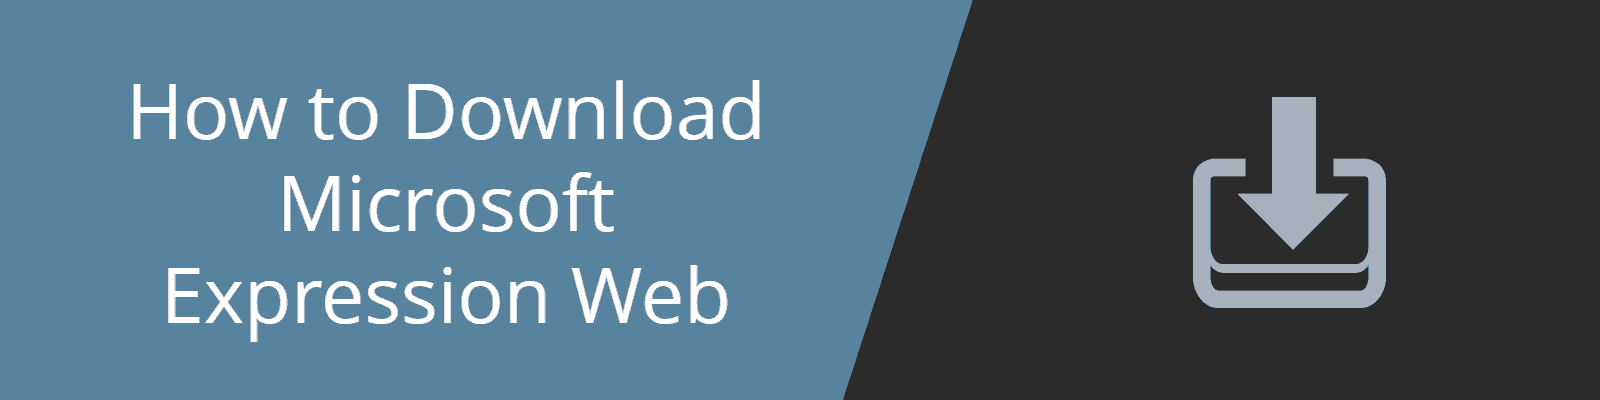 download expression web